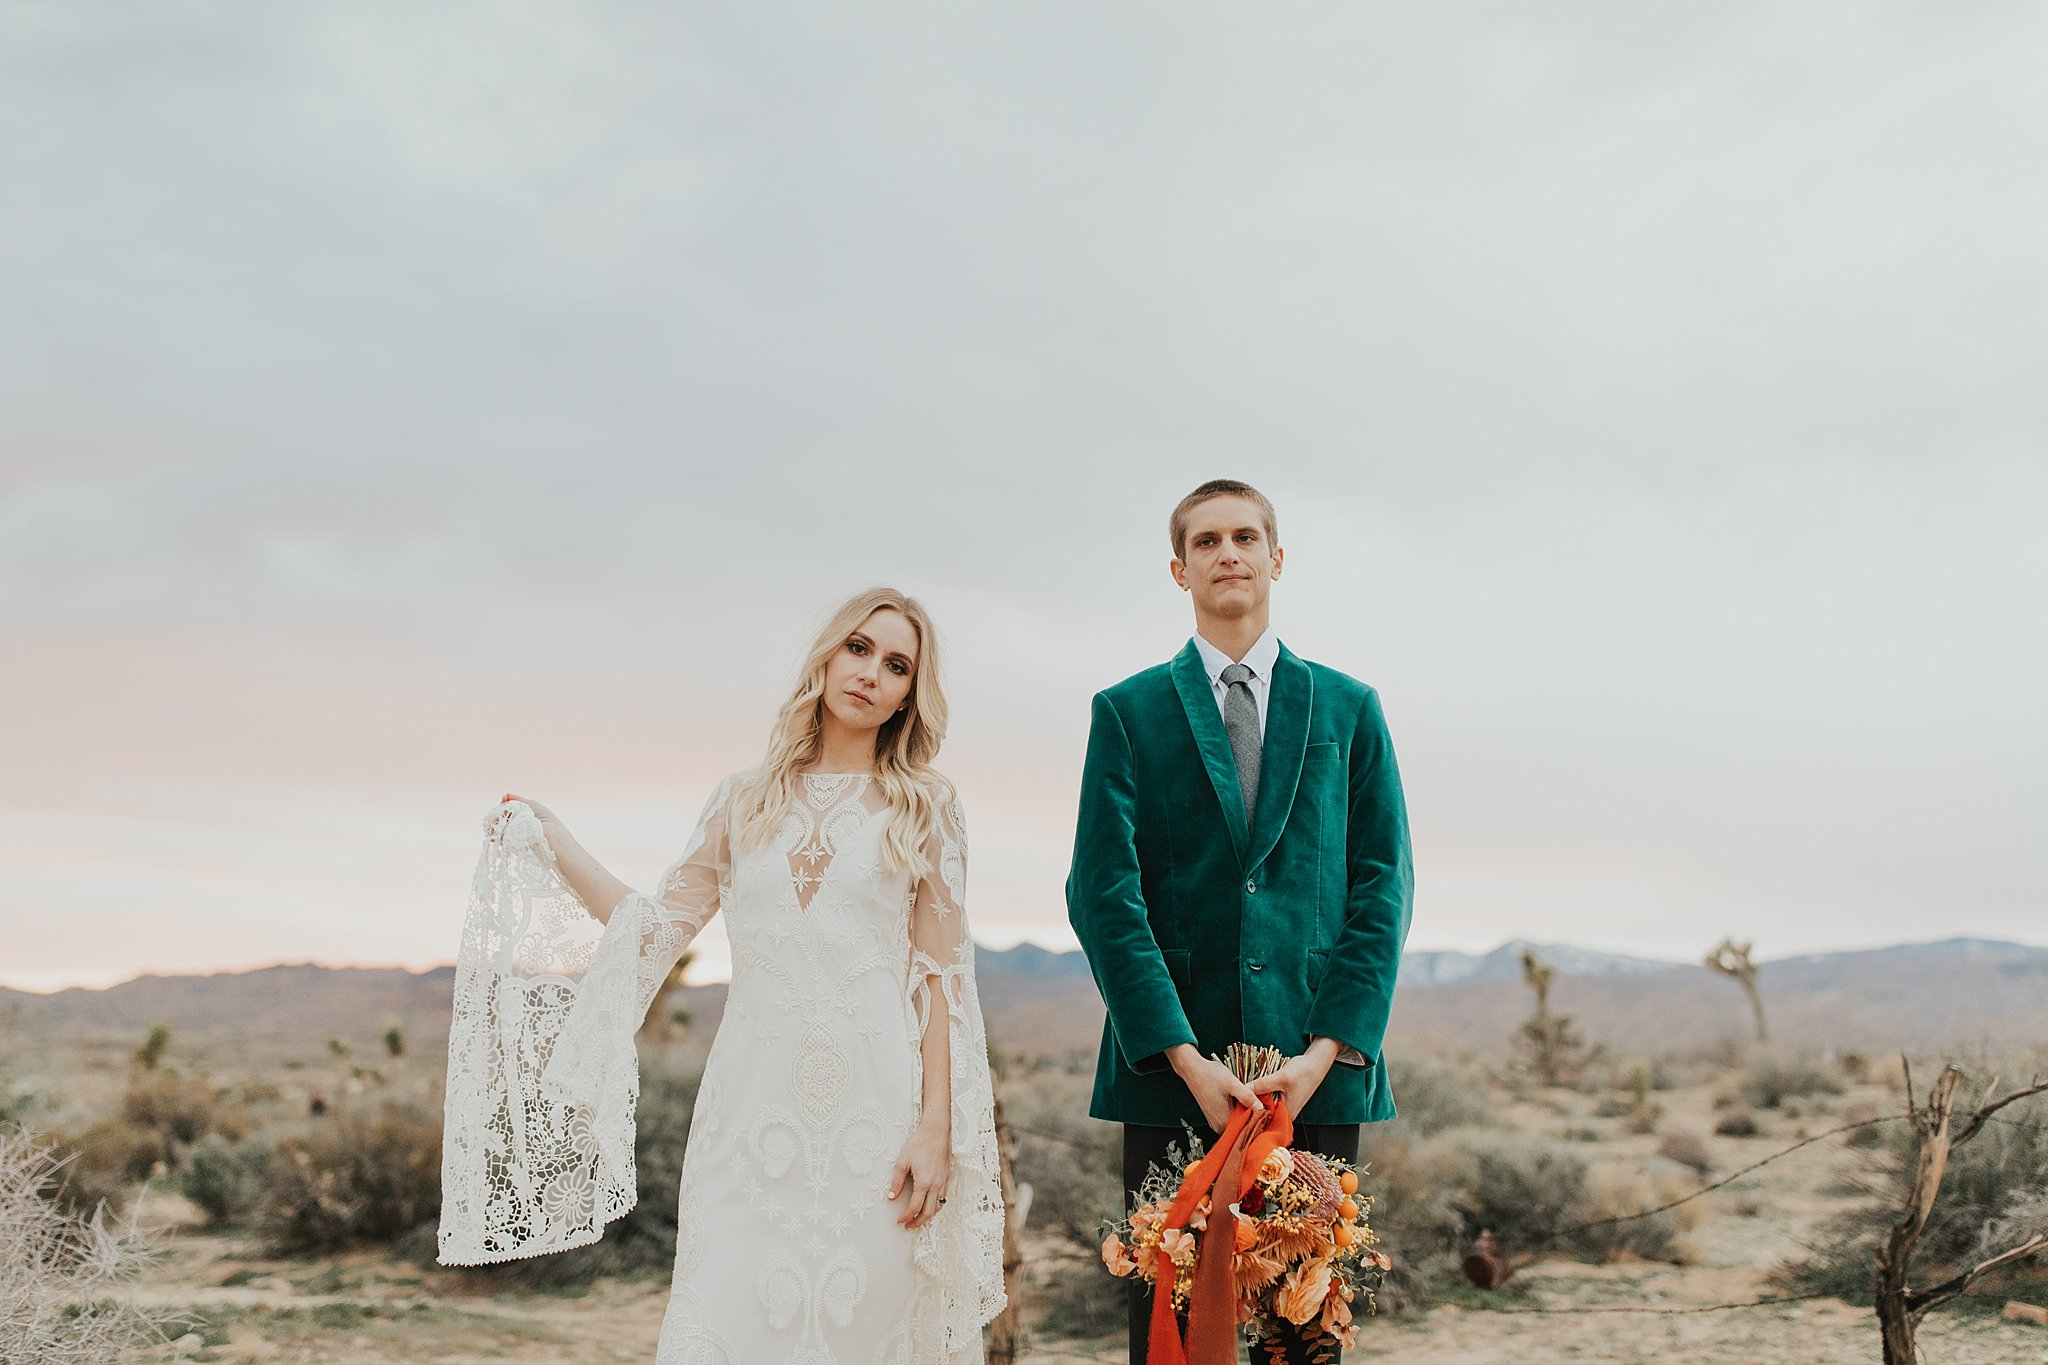 Meg's Marvels Photography - Joshua Tree Elopement California Wedding_0187.jpg